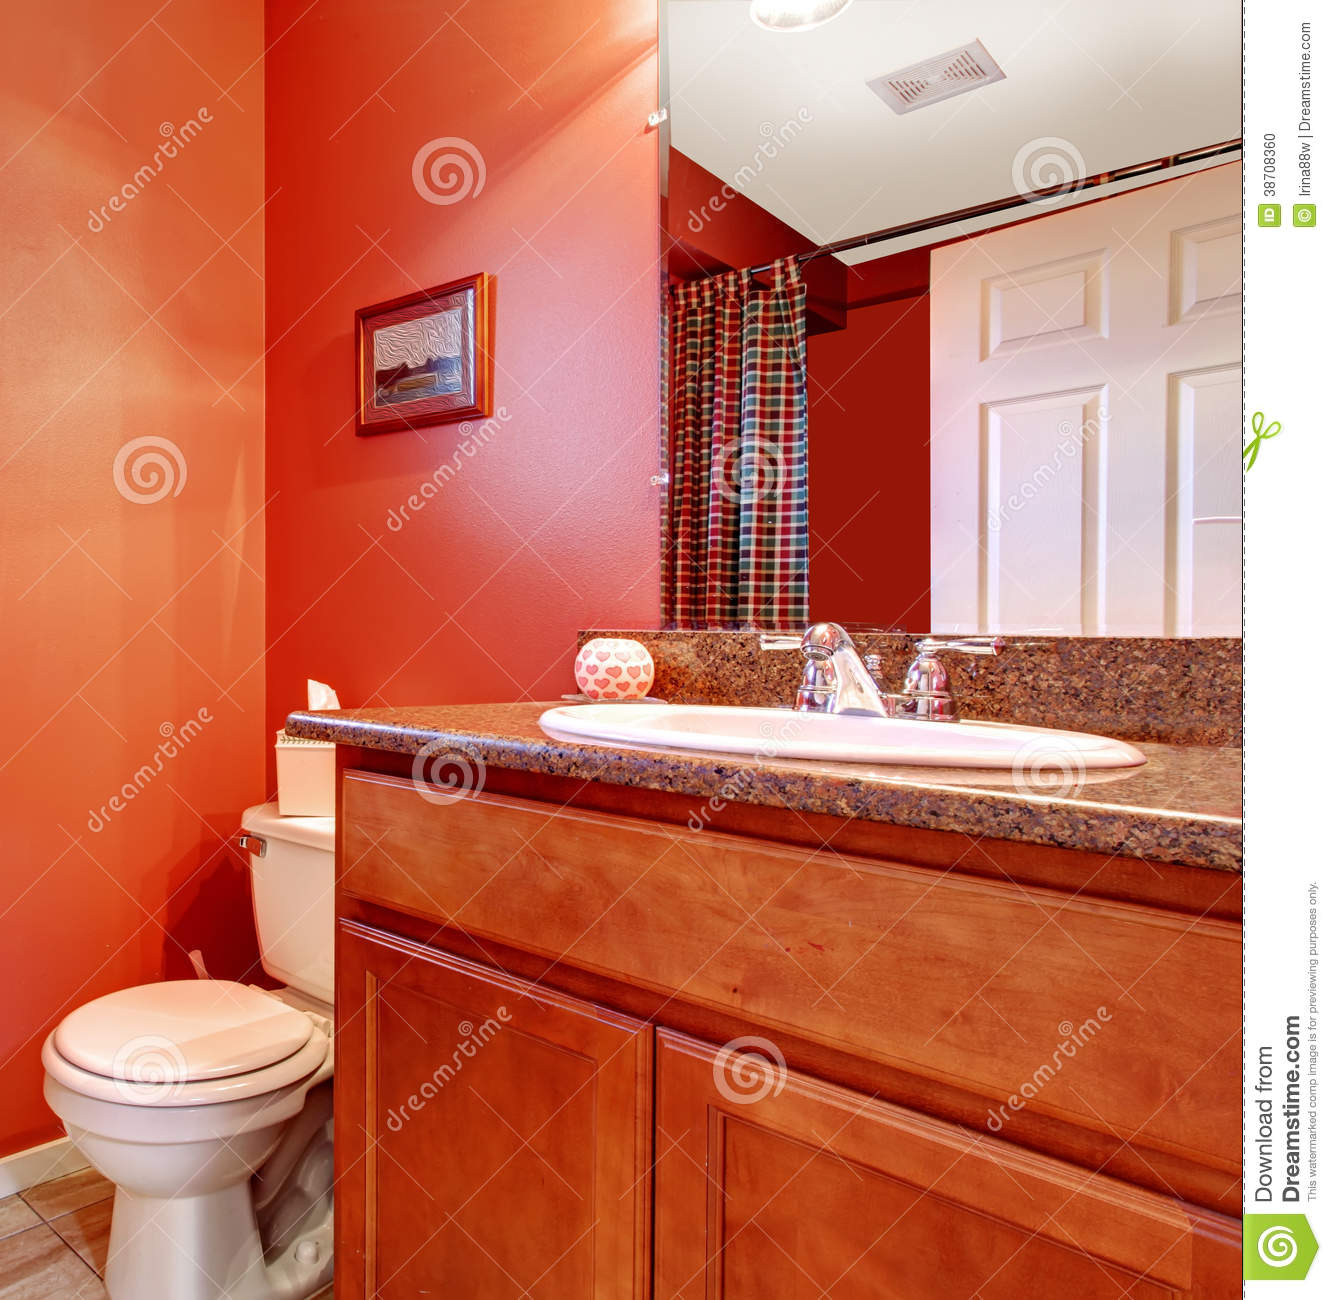 Red Bathroom Corner With A Washbasin Cabinet Stock Photo - Image: 38708360